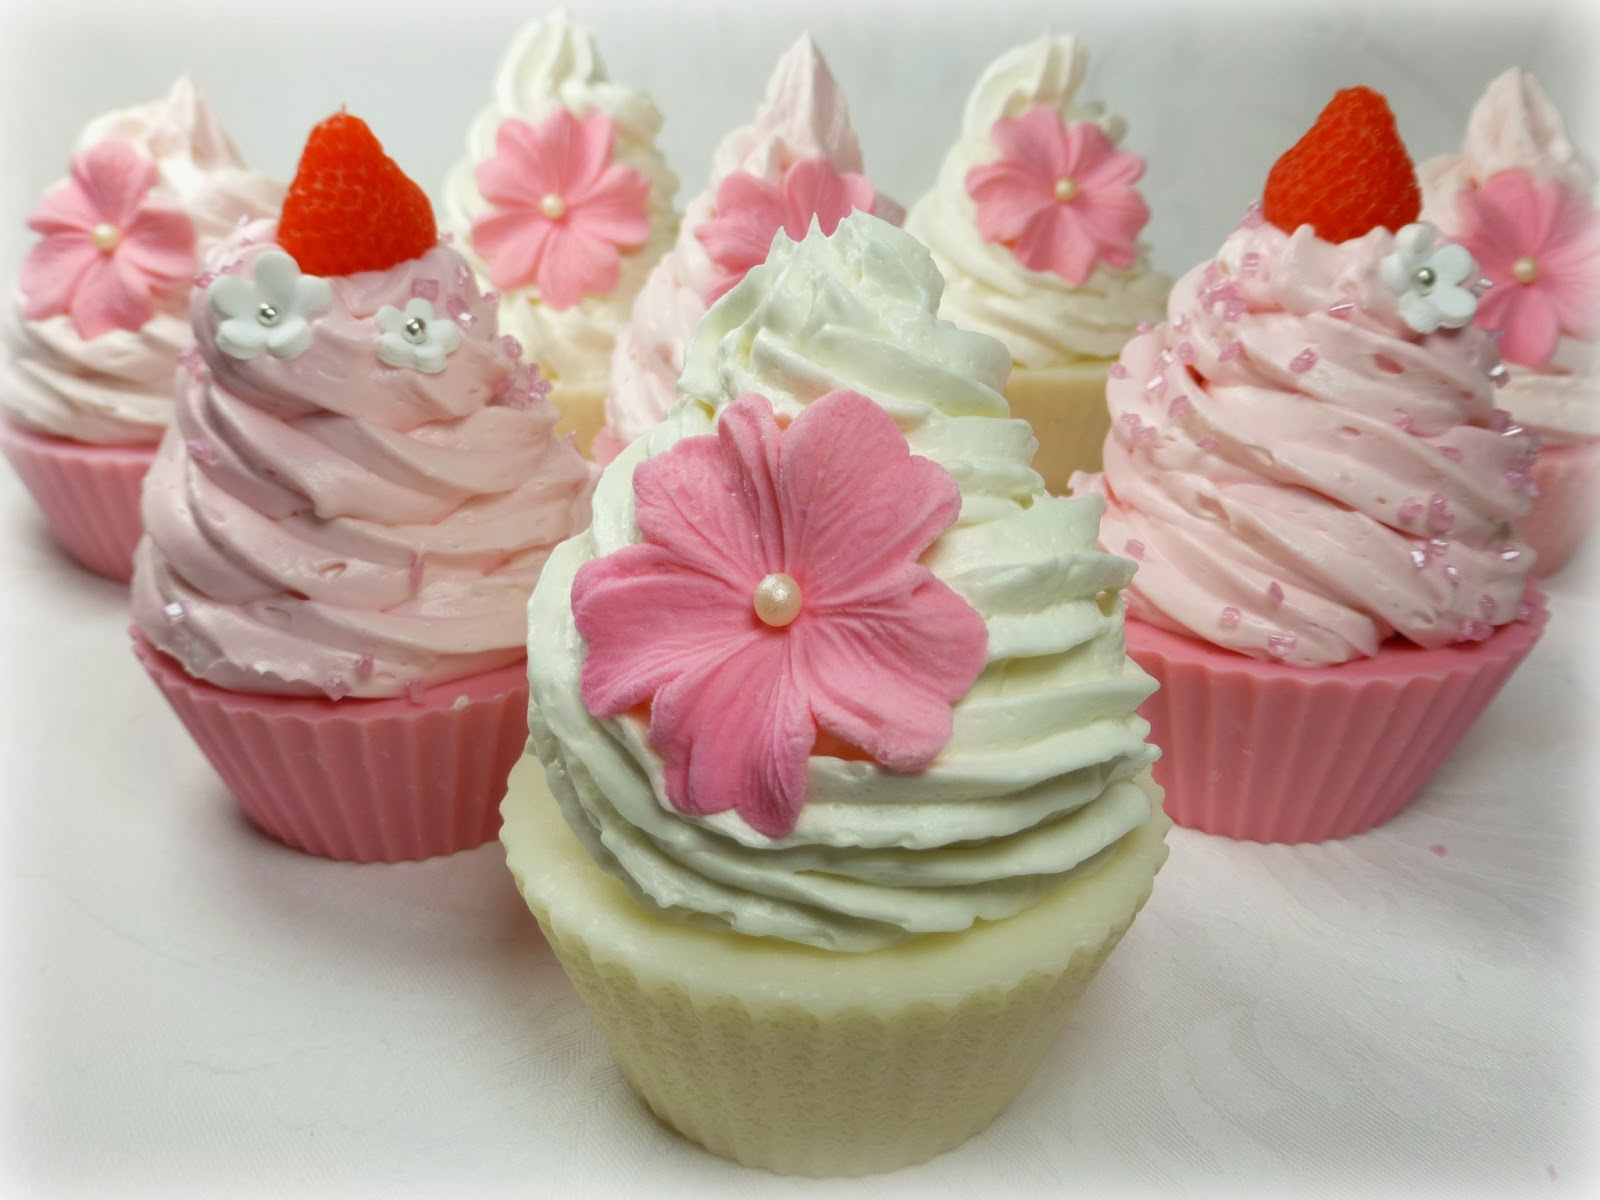 http://www.delicious-soaps.de/seifen/cupcake-soaps/index.php